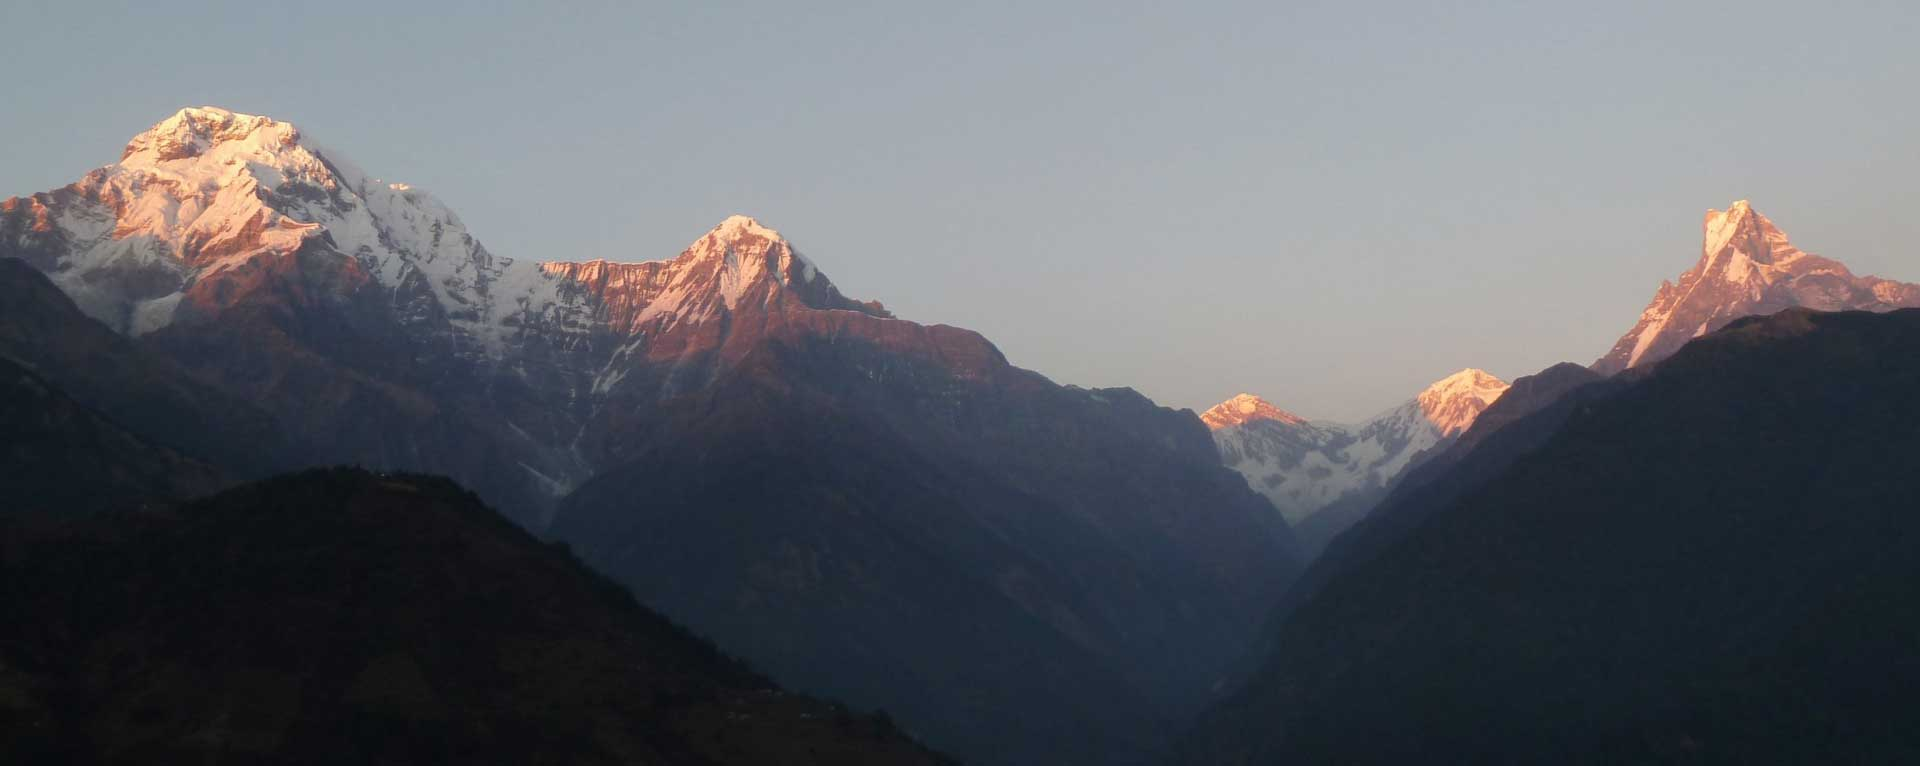 Sunset over Annapurna and fishtail mountains. The view from Ghandruk.